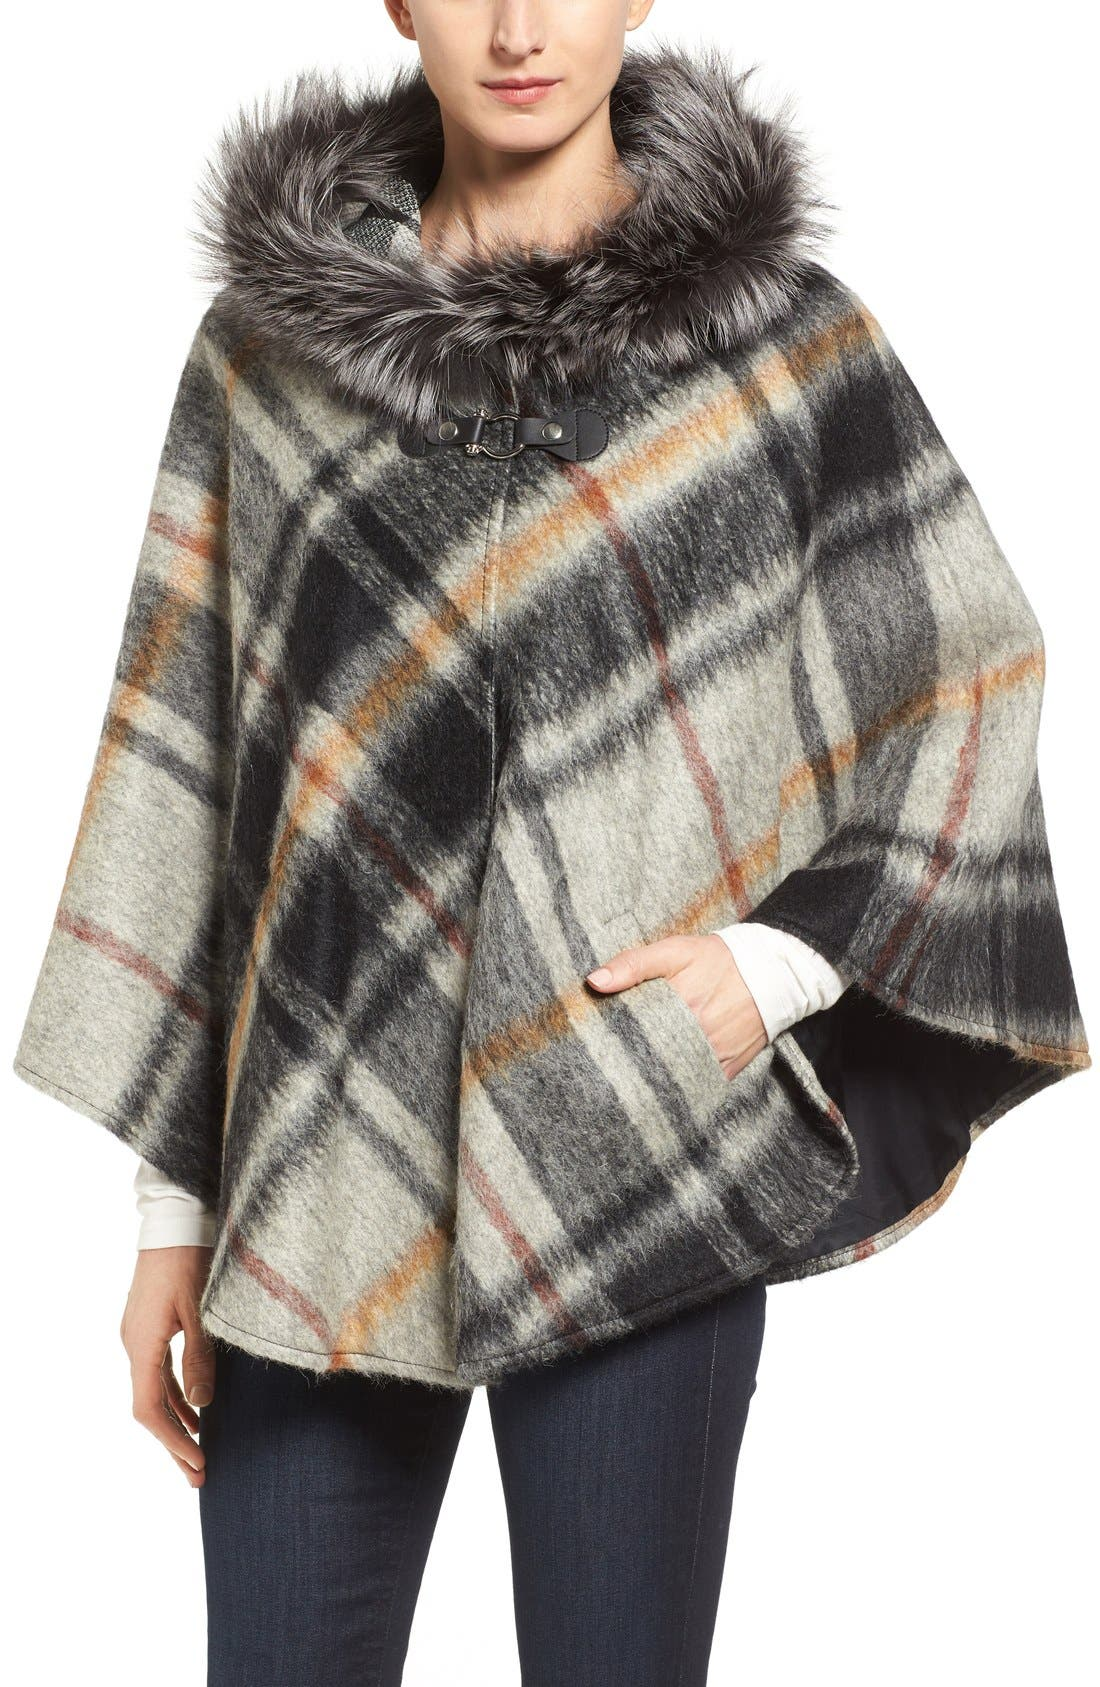 HISO Hide Society Hooded Plaid Cape with Genuine Fox Fur Trim, Main, color, 020